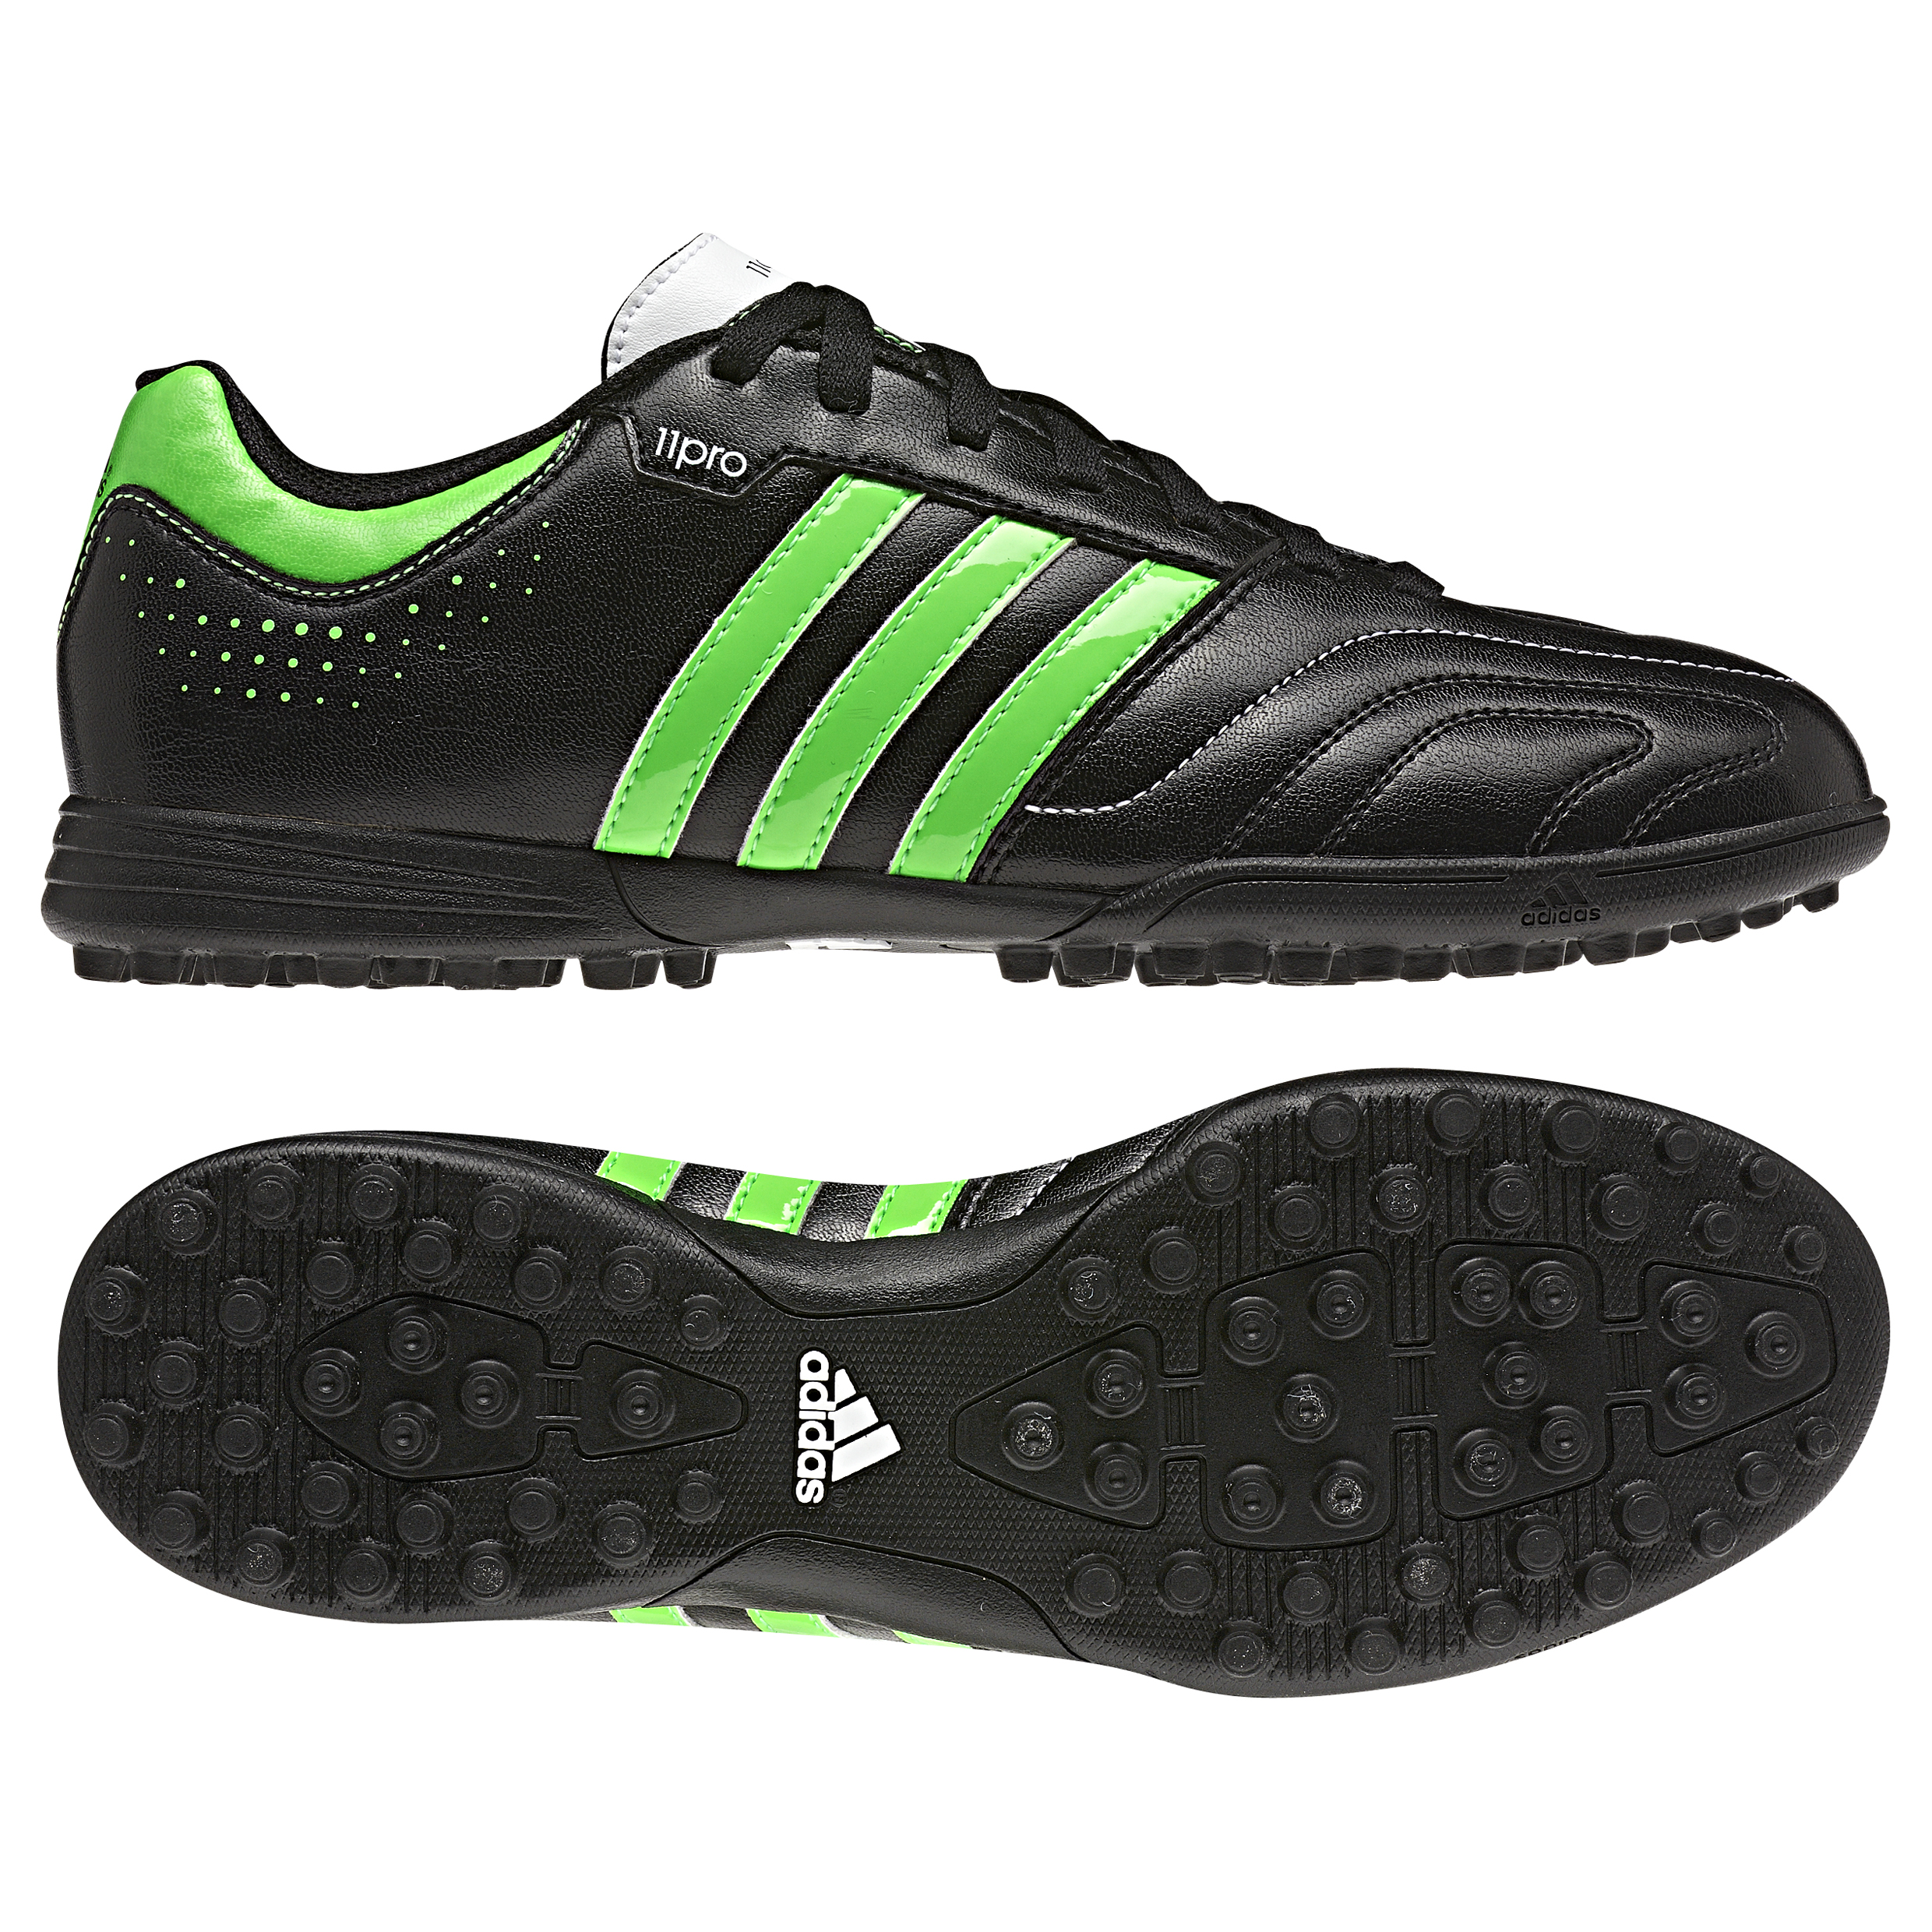 AdiPure 11Questra TRX Astroturf Black/Green Zest/Running White